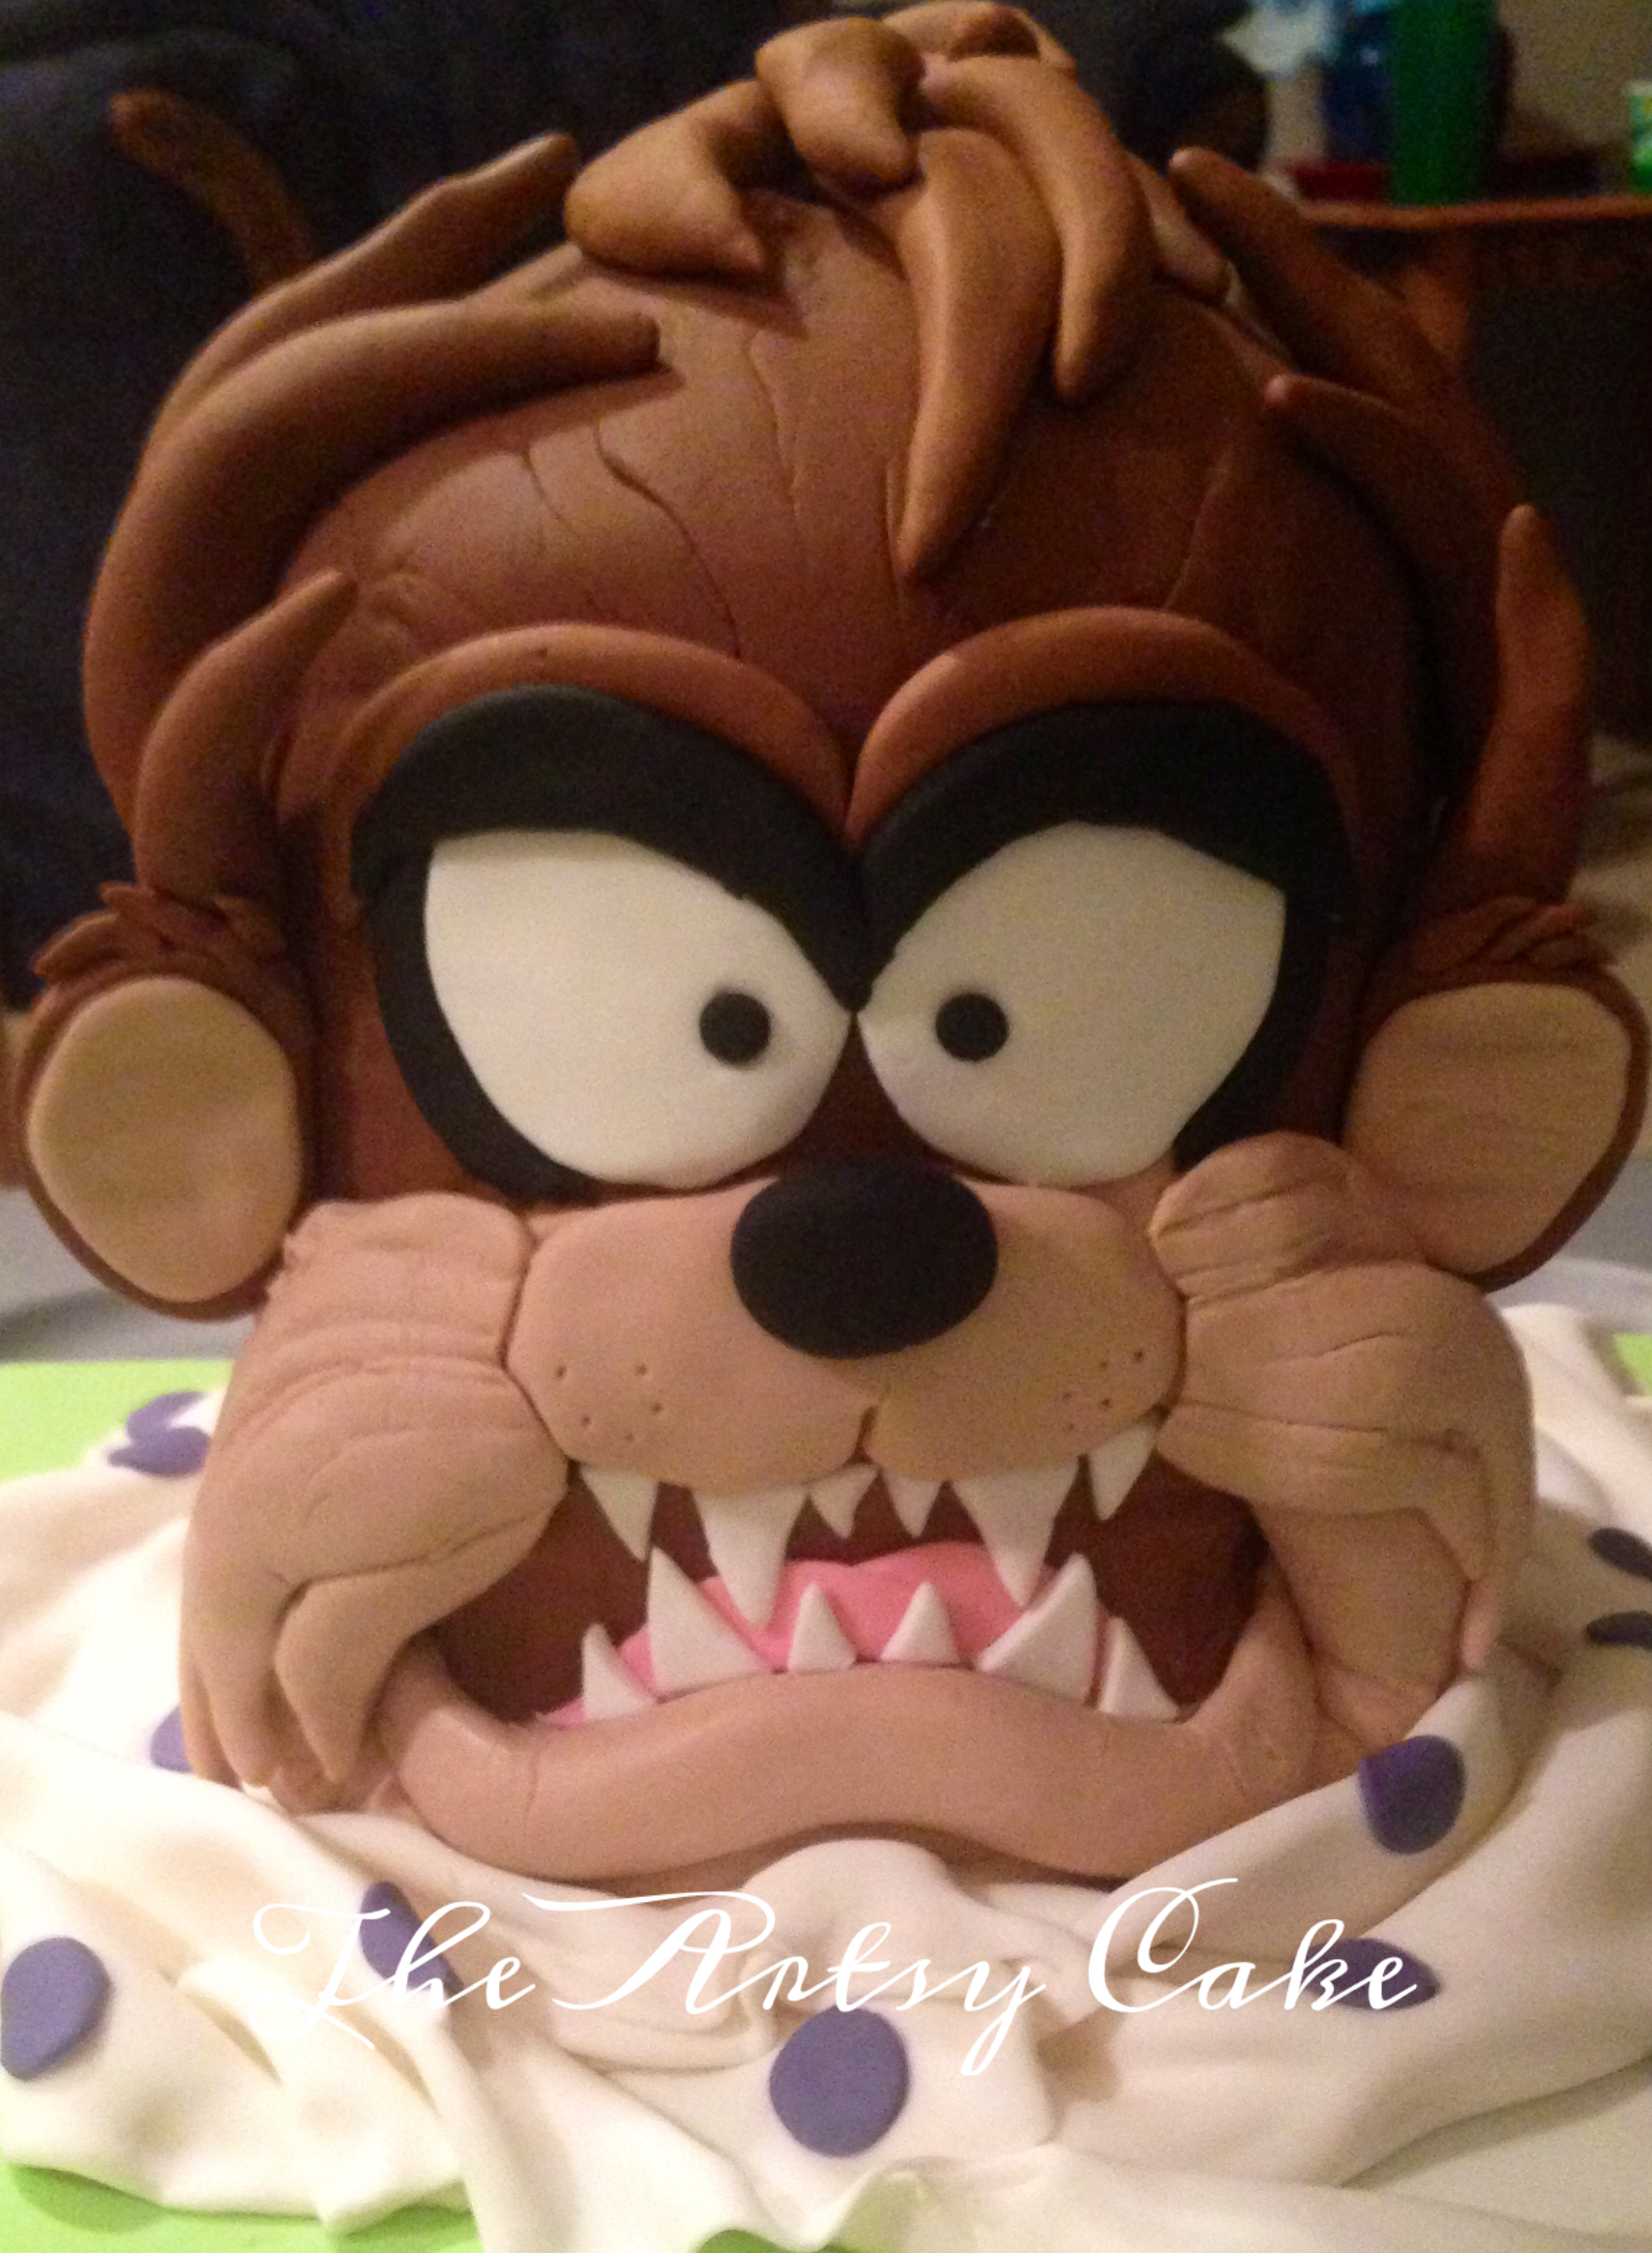 Sculpted Tazmanian Devil cake